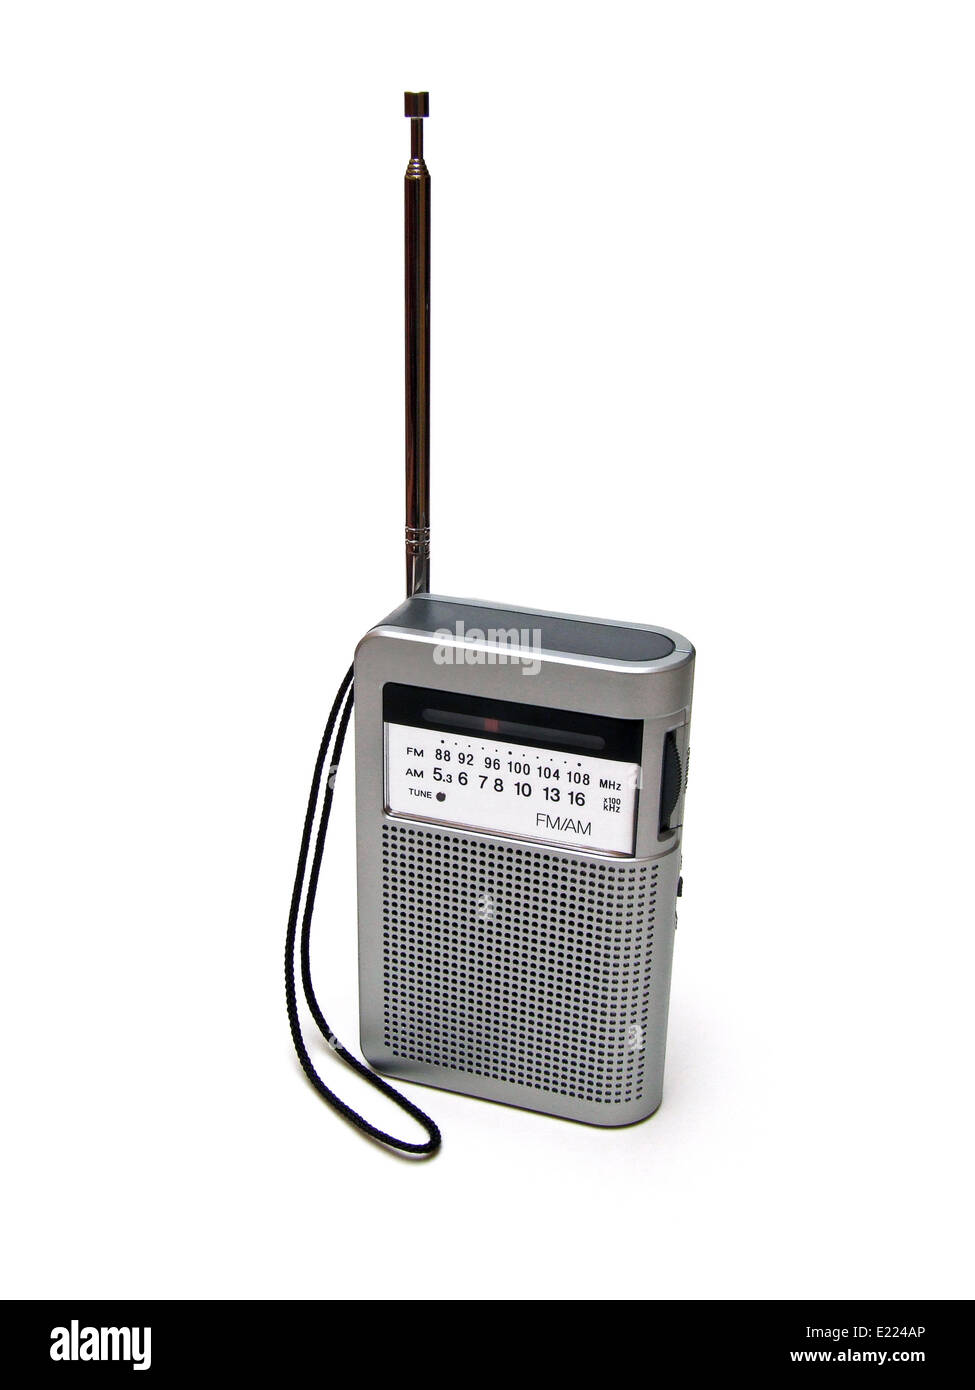 Fm Radio Transmitter Stockfotos Bilder Alamy Beacon Broadcast 88 108 Mhz Stockbild